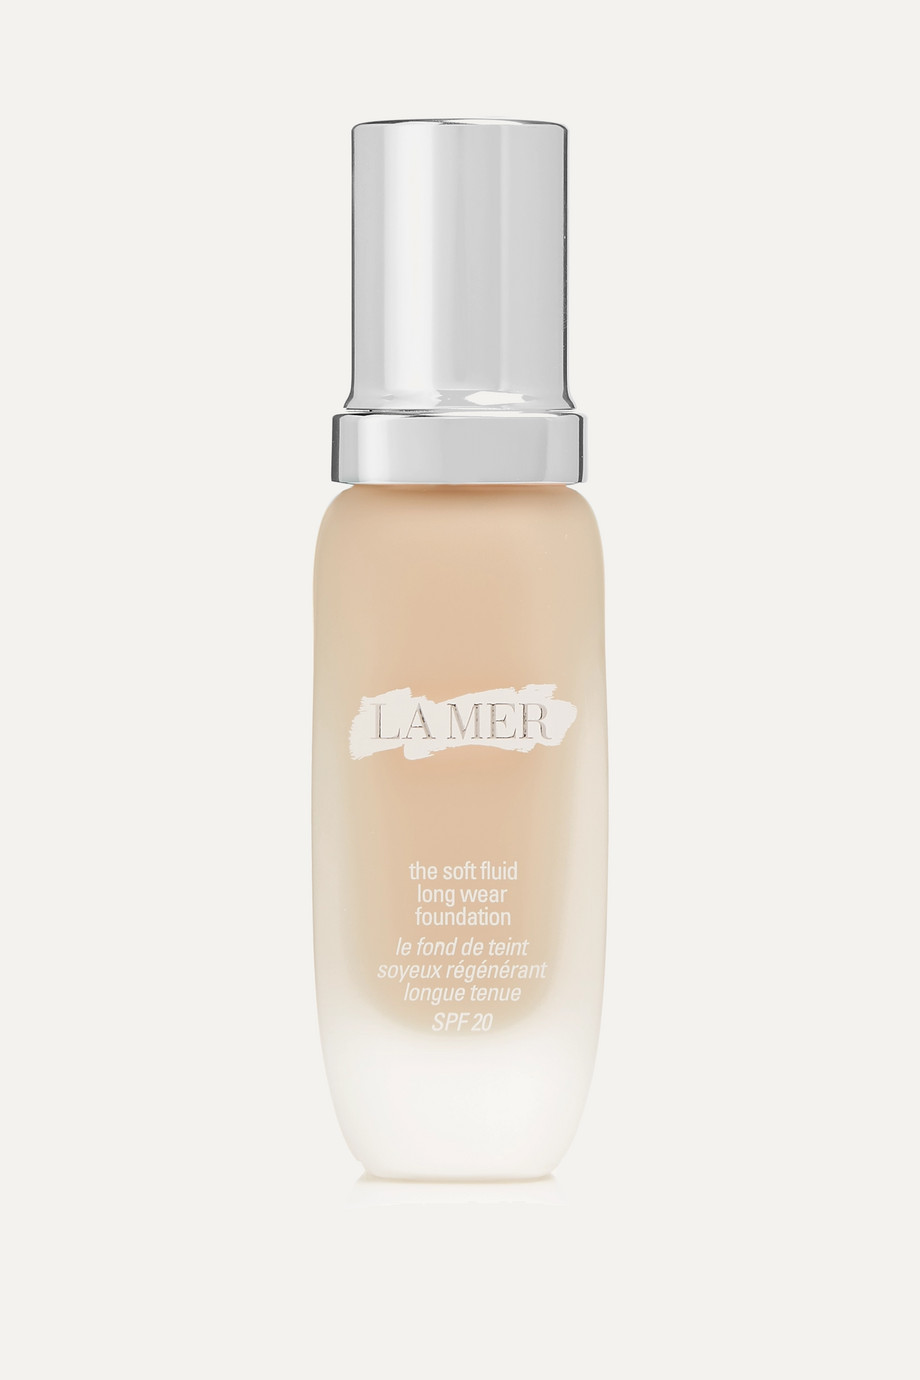 La Mer The Soft Fluid Long Wear Foundation SPF20 - 160 Crème, 30ml